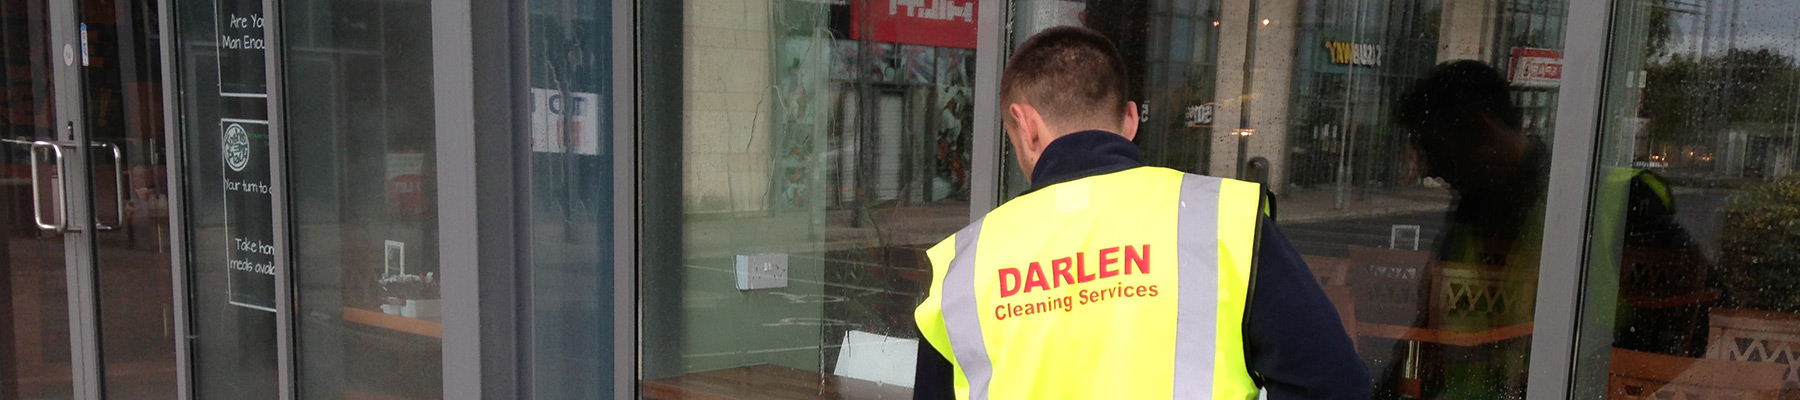 Darlen Cleaning Services Company Dublin Ireland